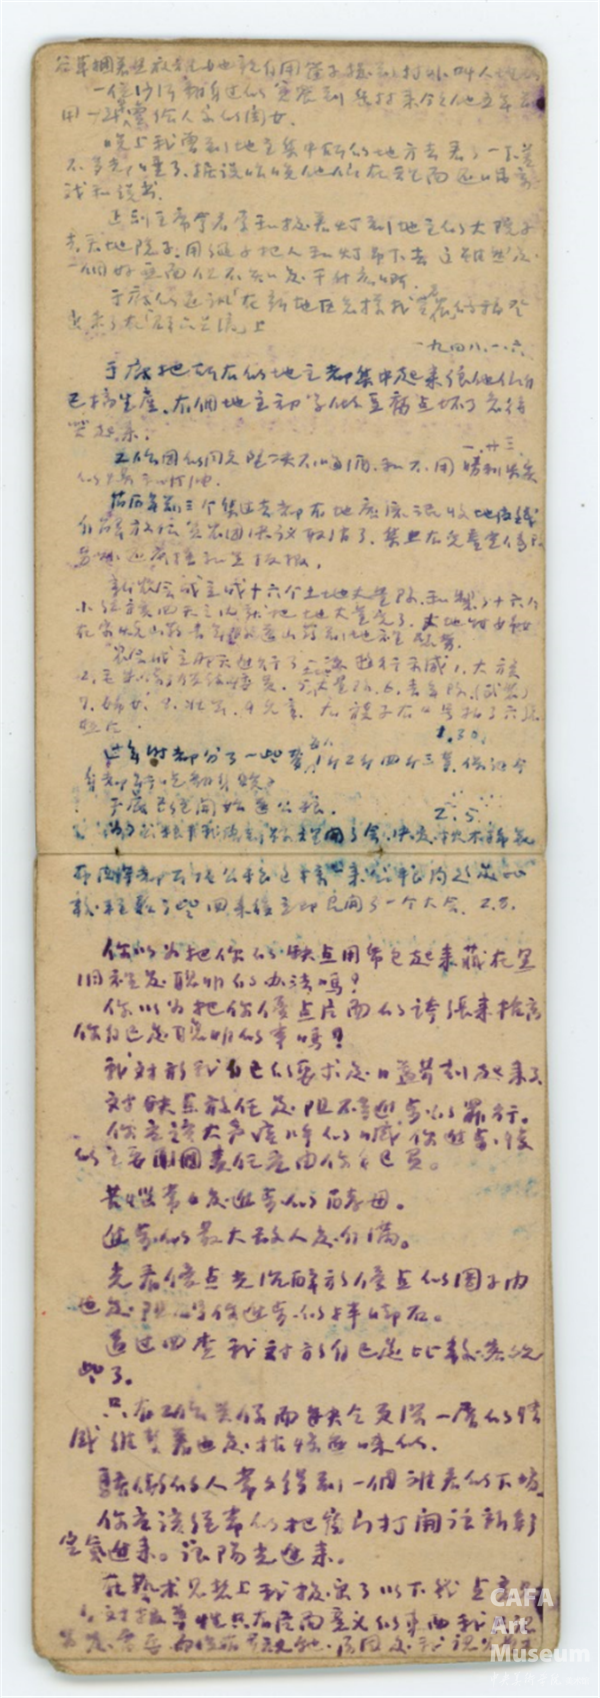 https://static.cafamuseum.org/museum-image/image/202012/sy_1608084600664814.png